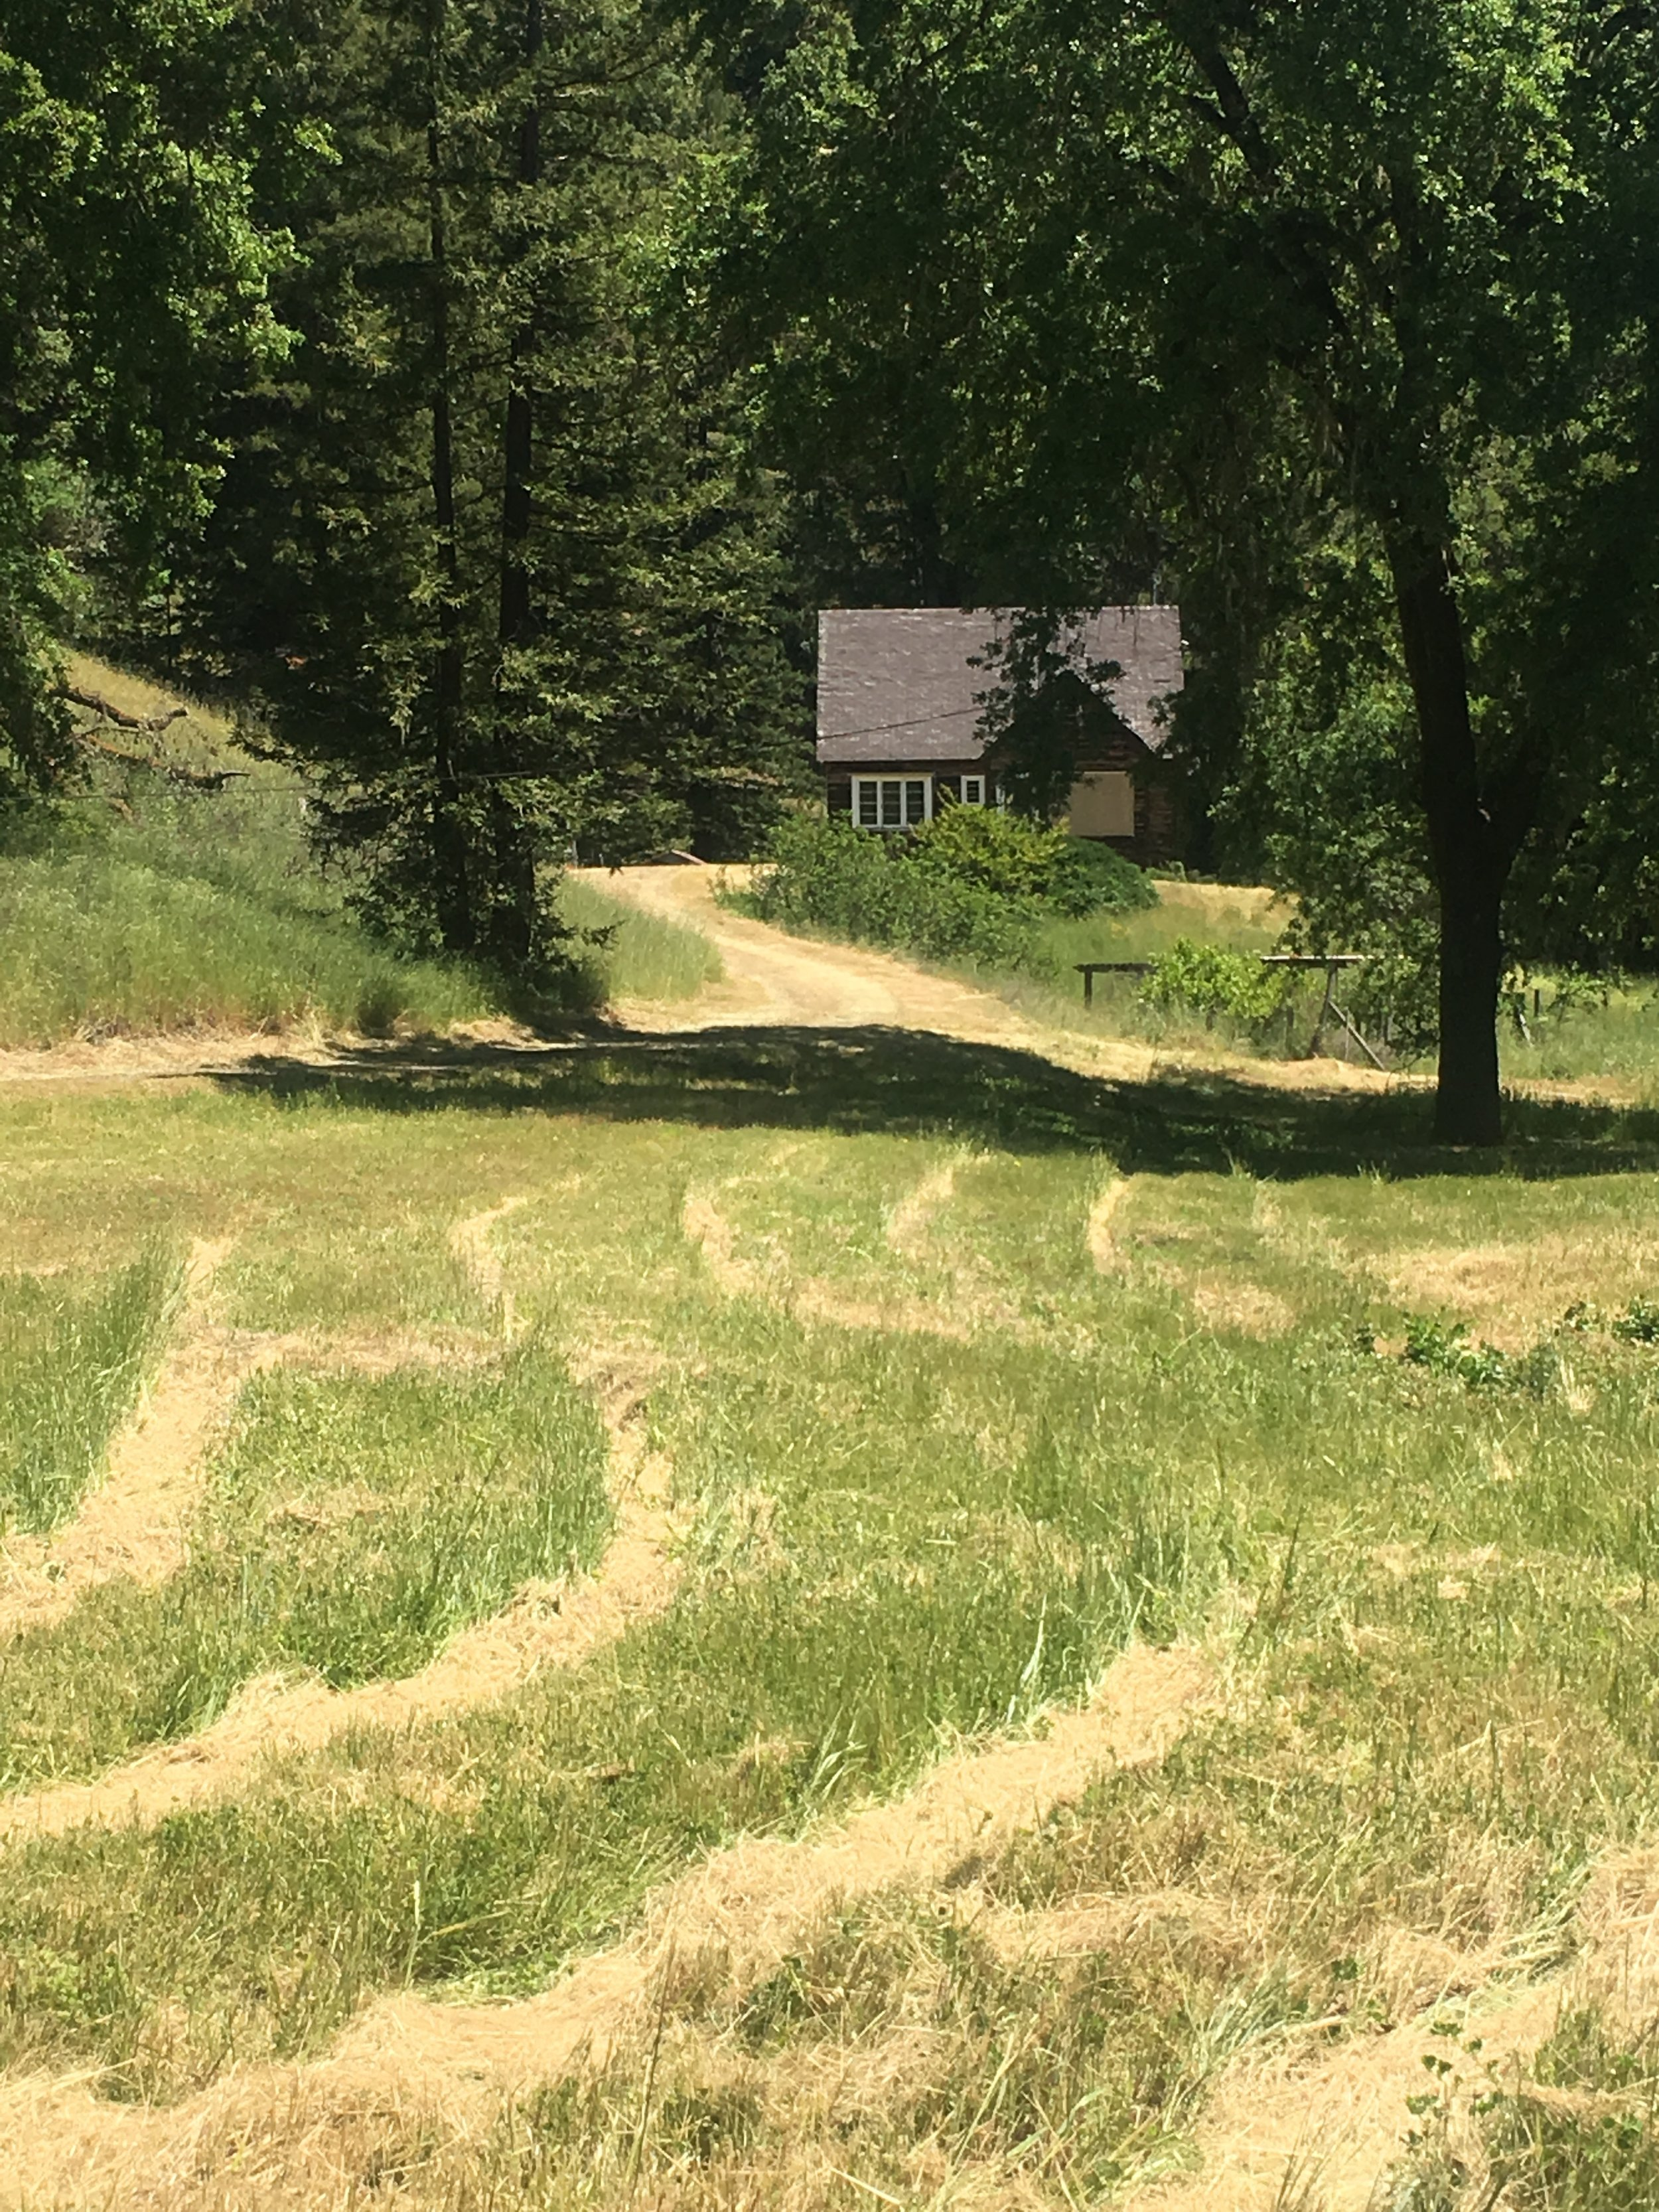 Meadows leading to a cabin for sale in Mendocino County near Yorkville.